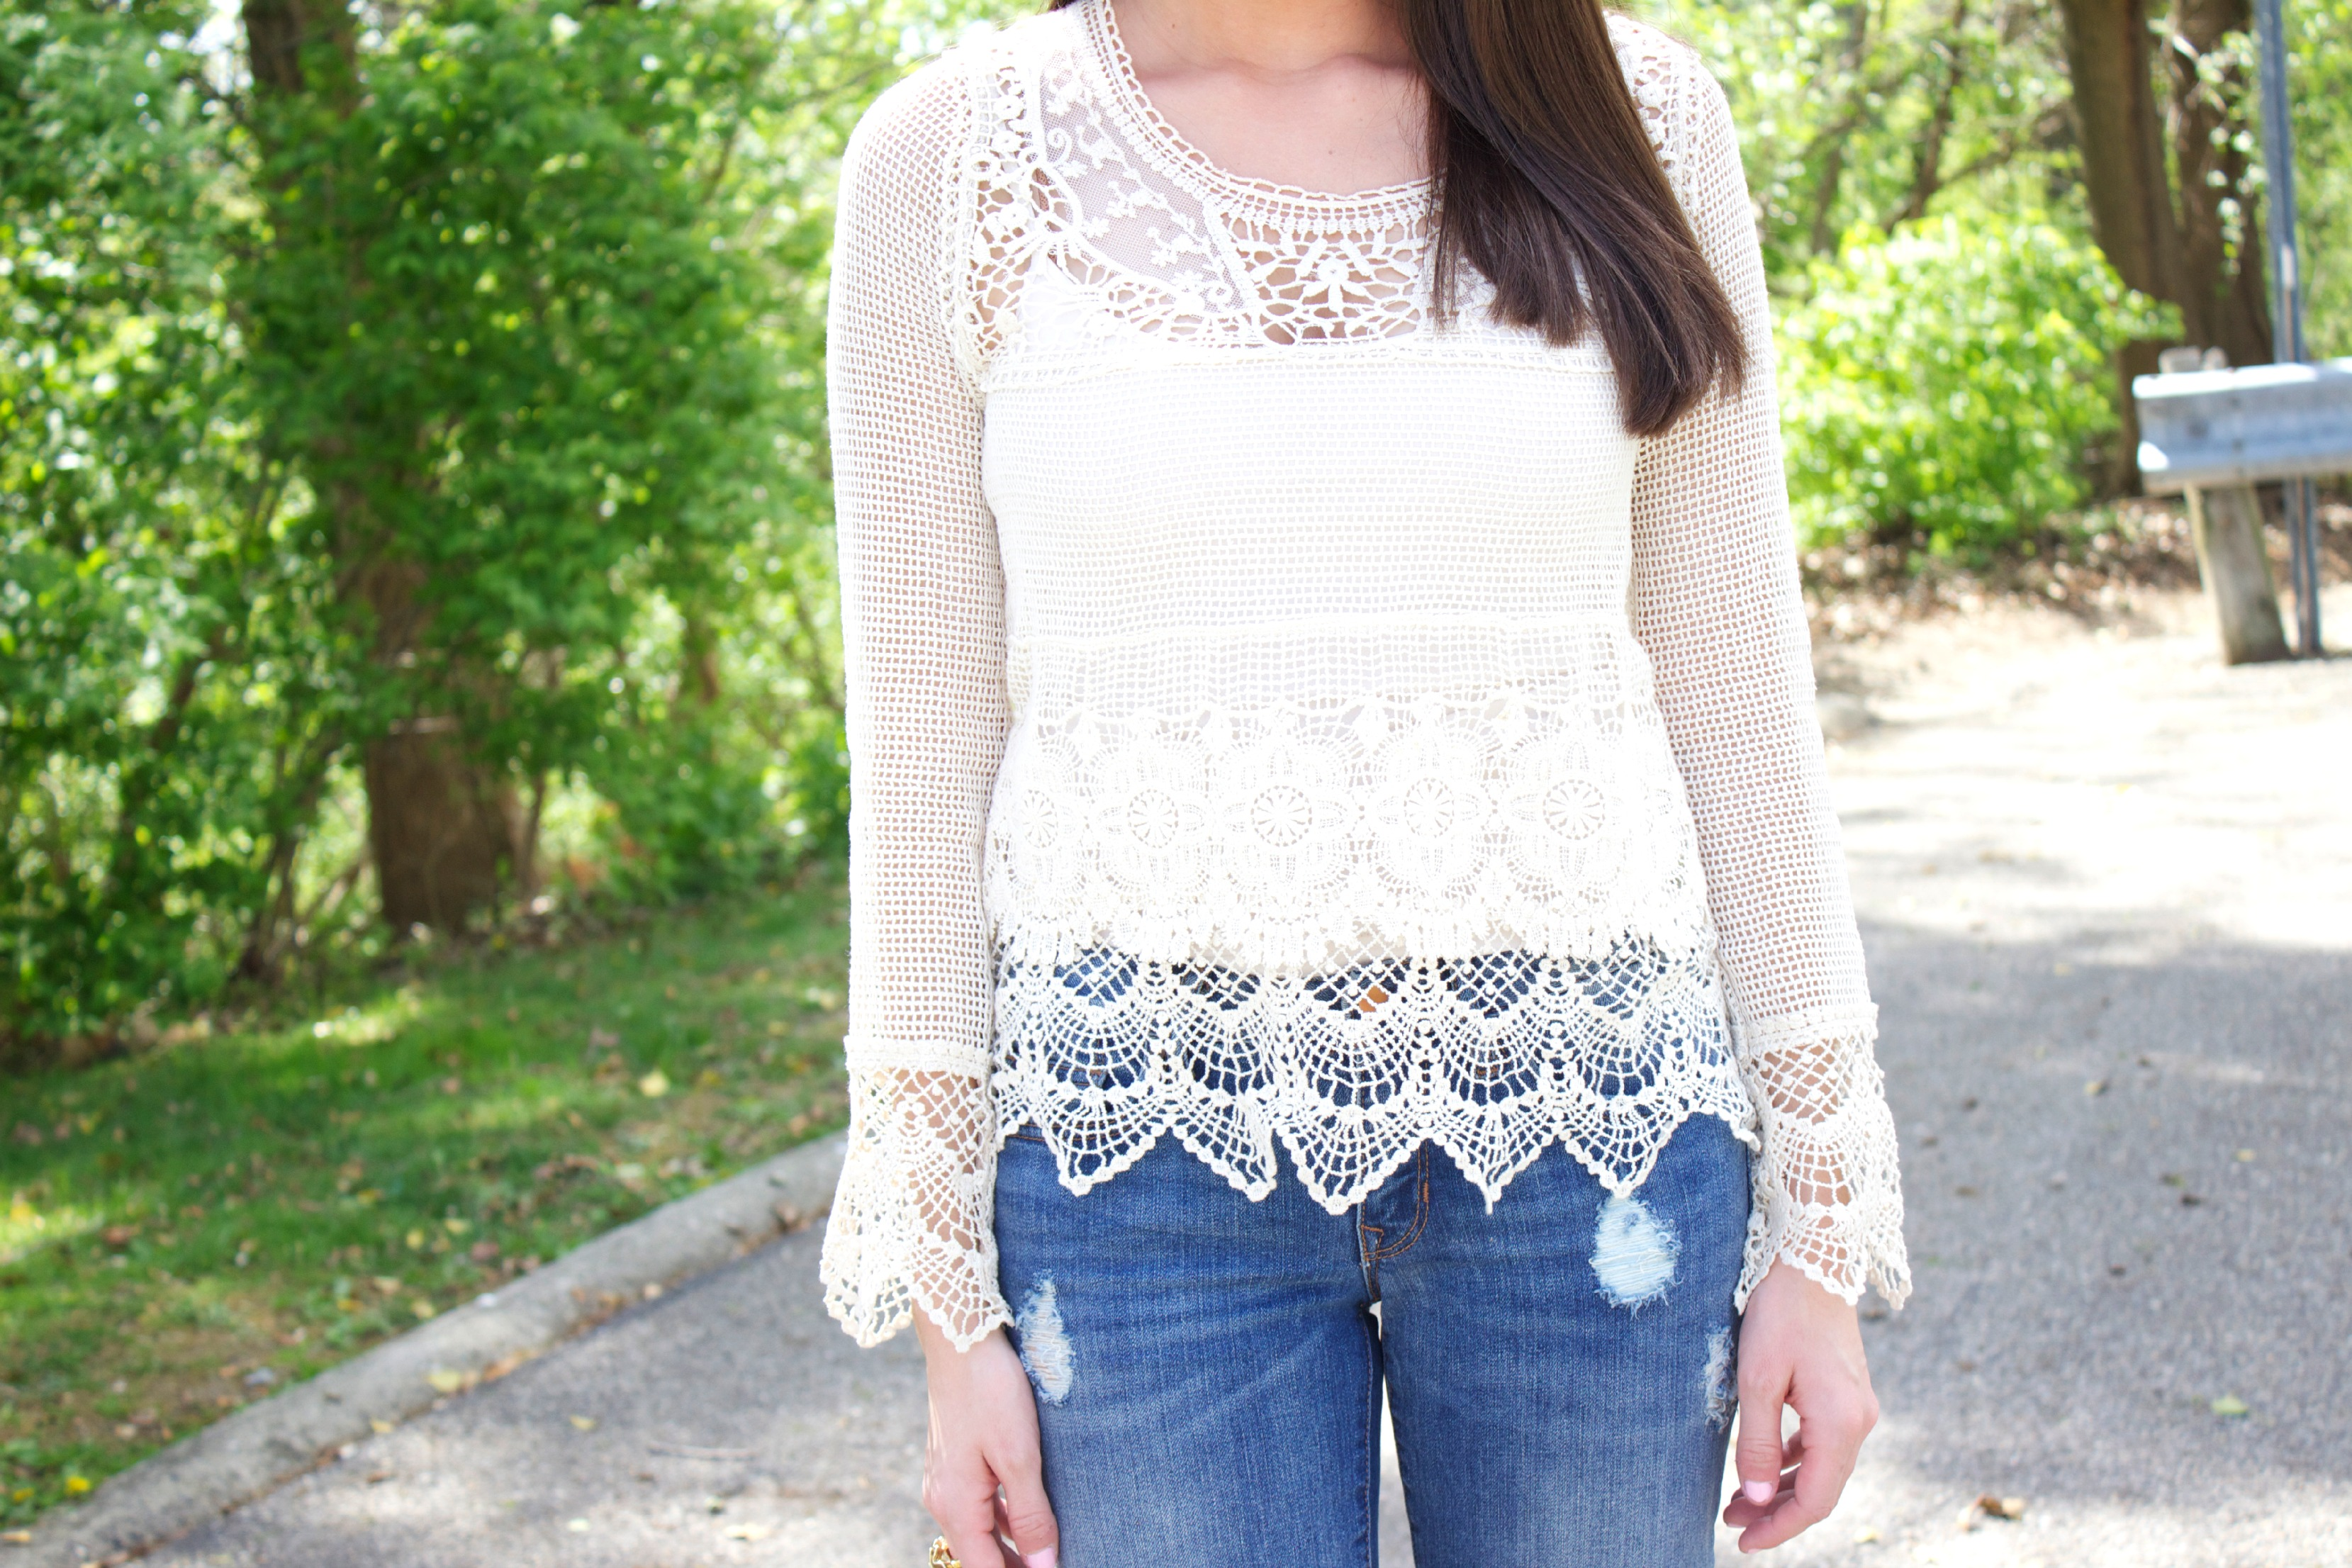 Urban Outfitters Crochet and Lace Top